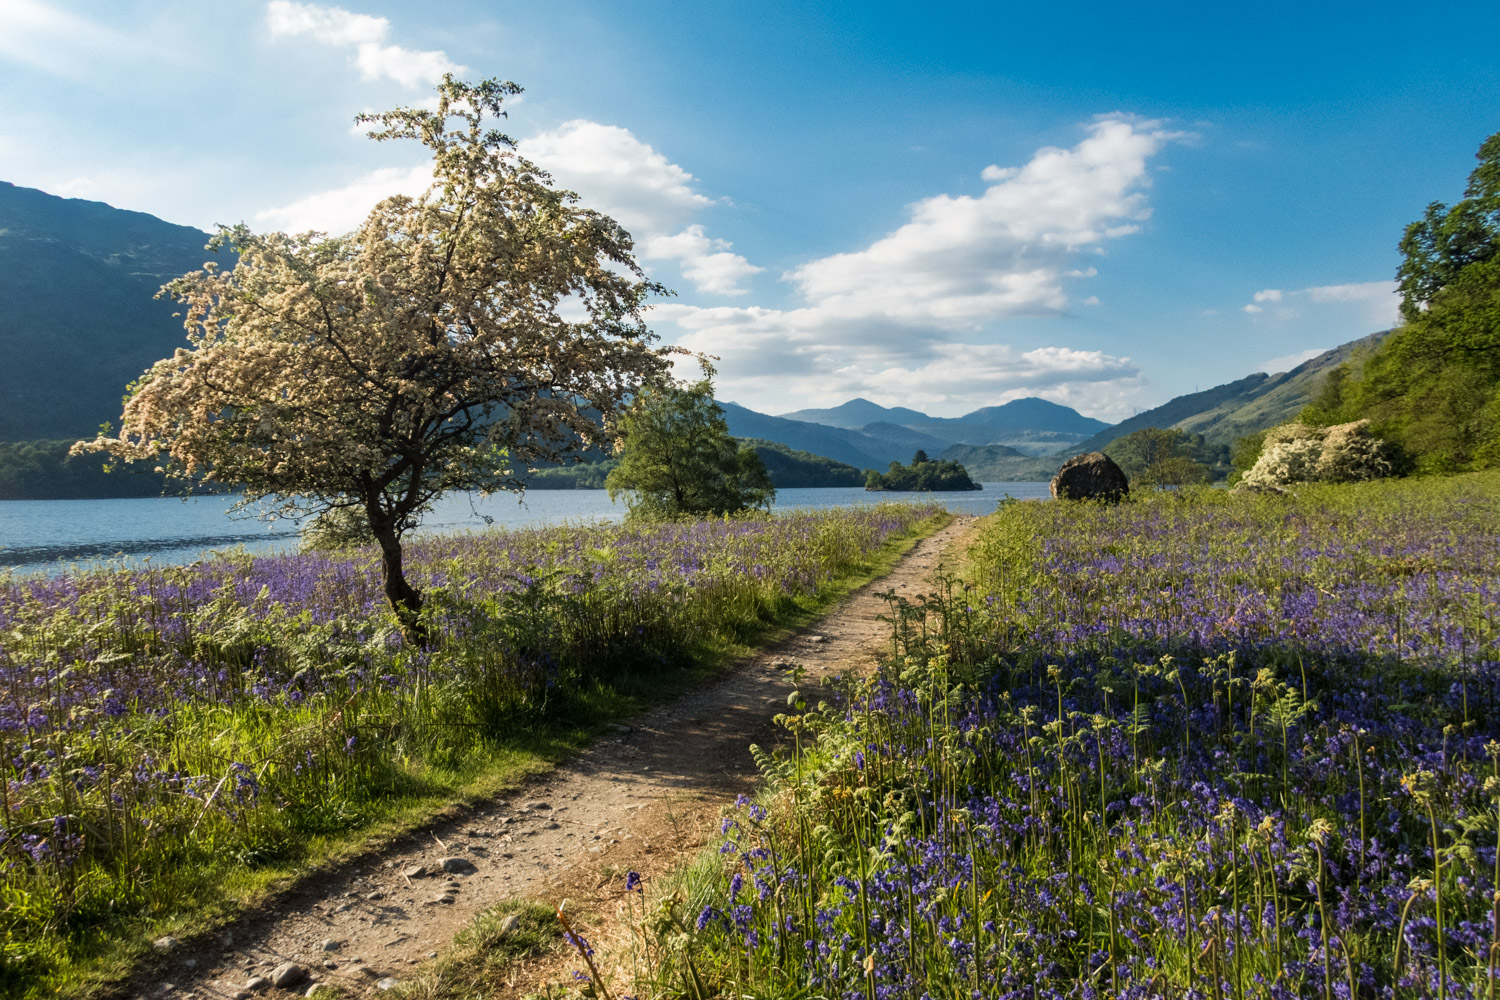 Stunning views over Loch Lomond as the path opened out to a sea of bluebells.